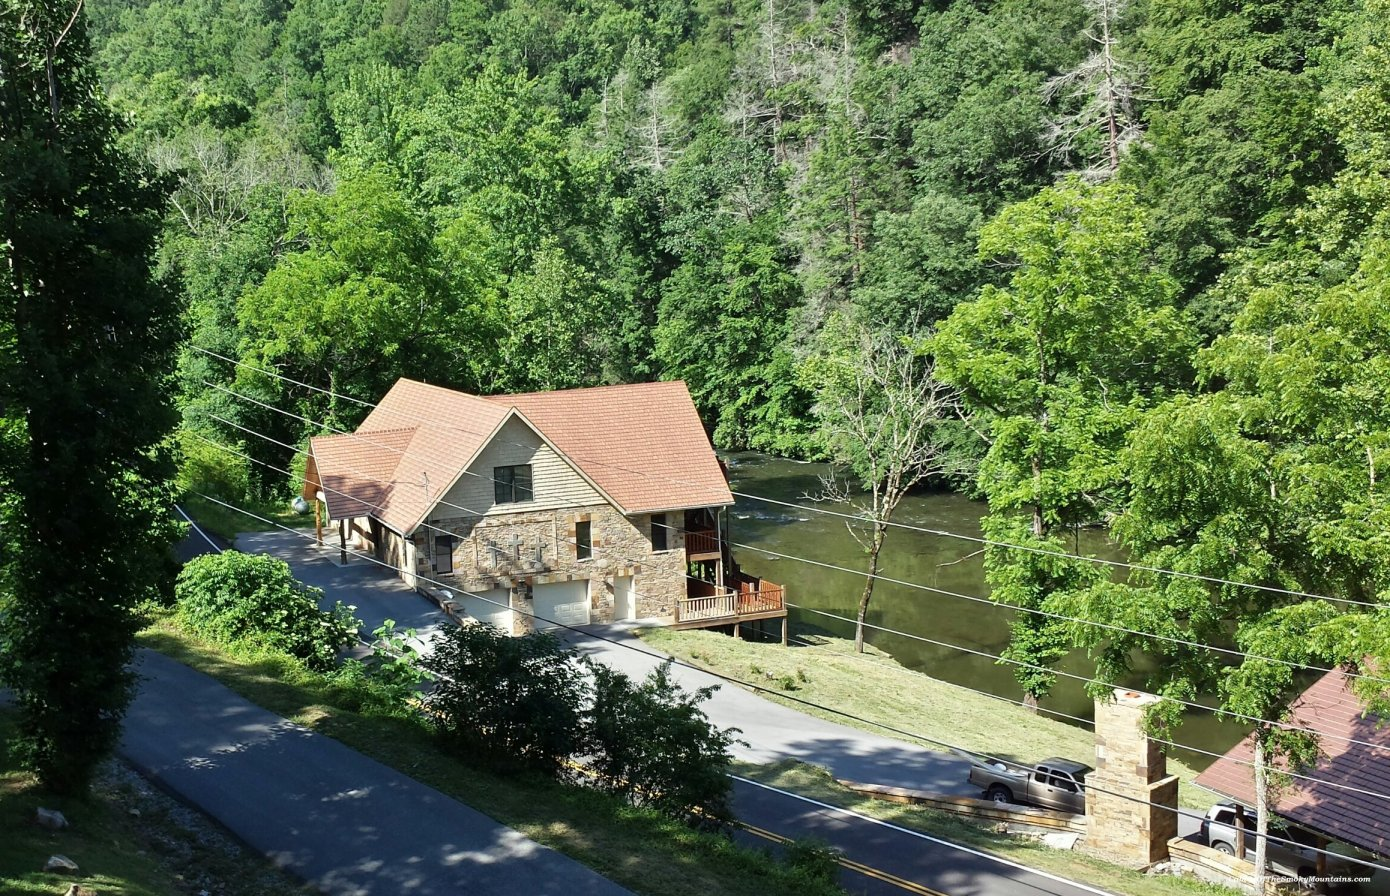 vrbo rentals in pigeon near vacation friendly article forge tn cabins family homeaway